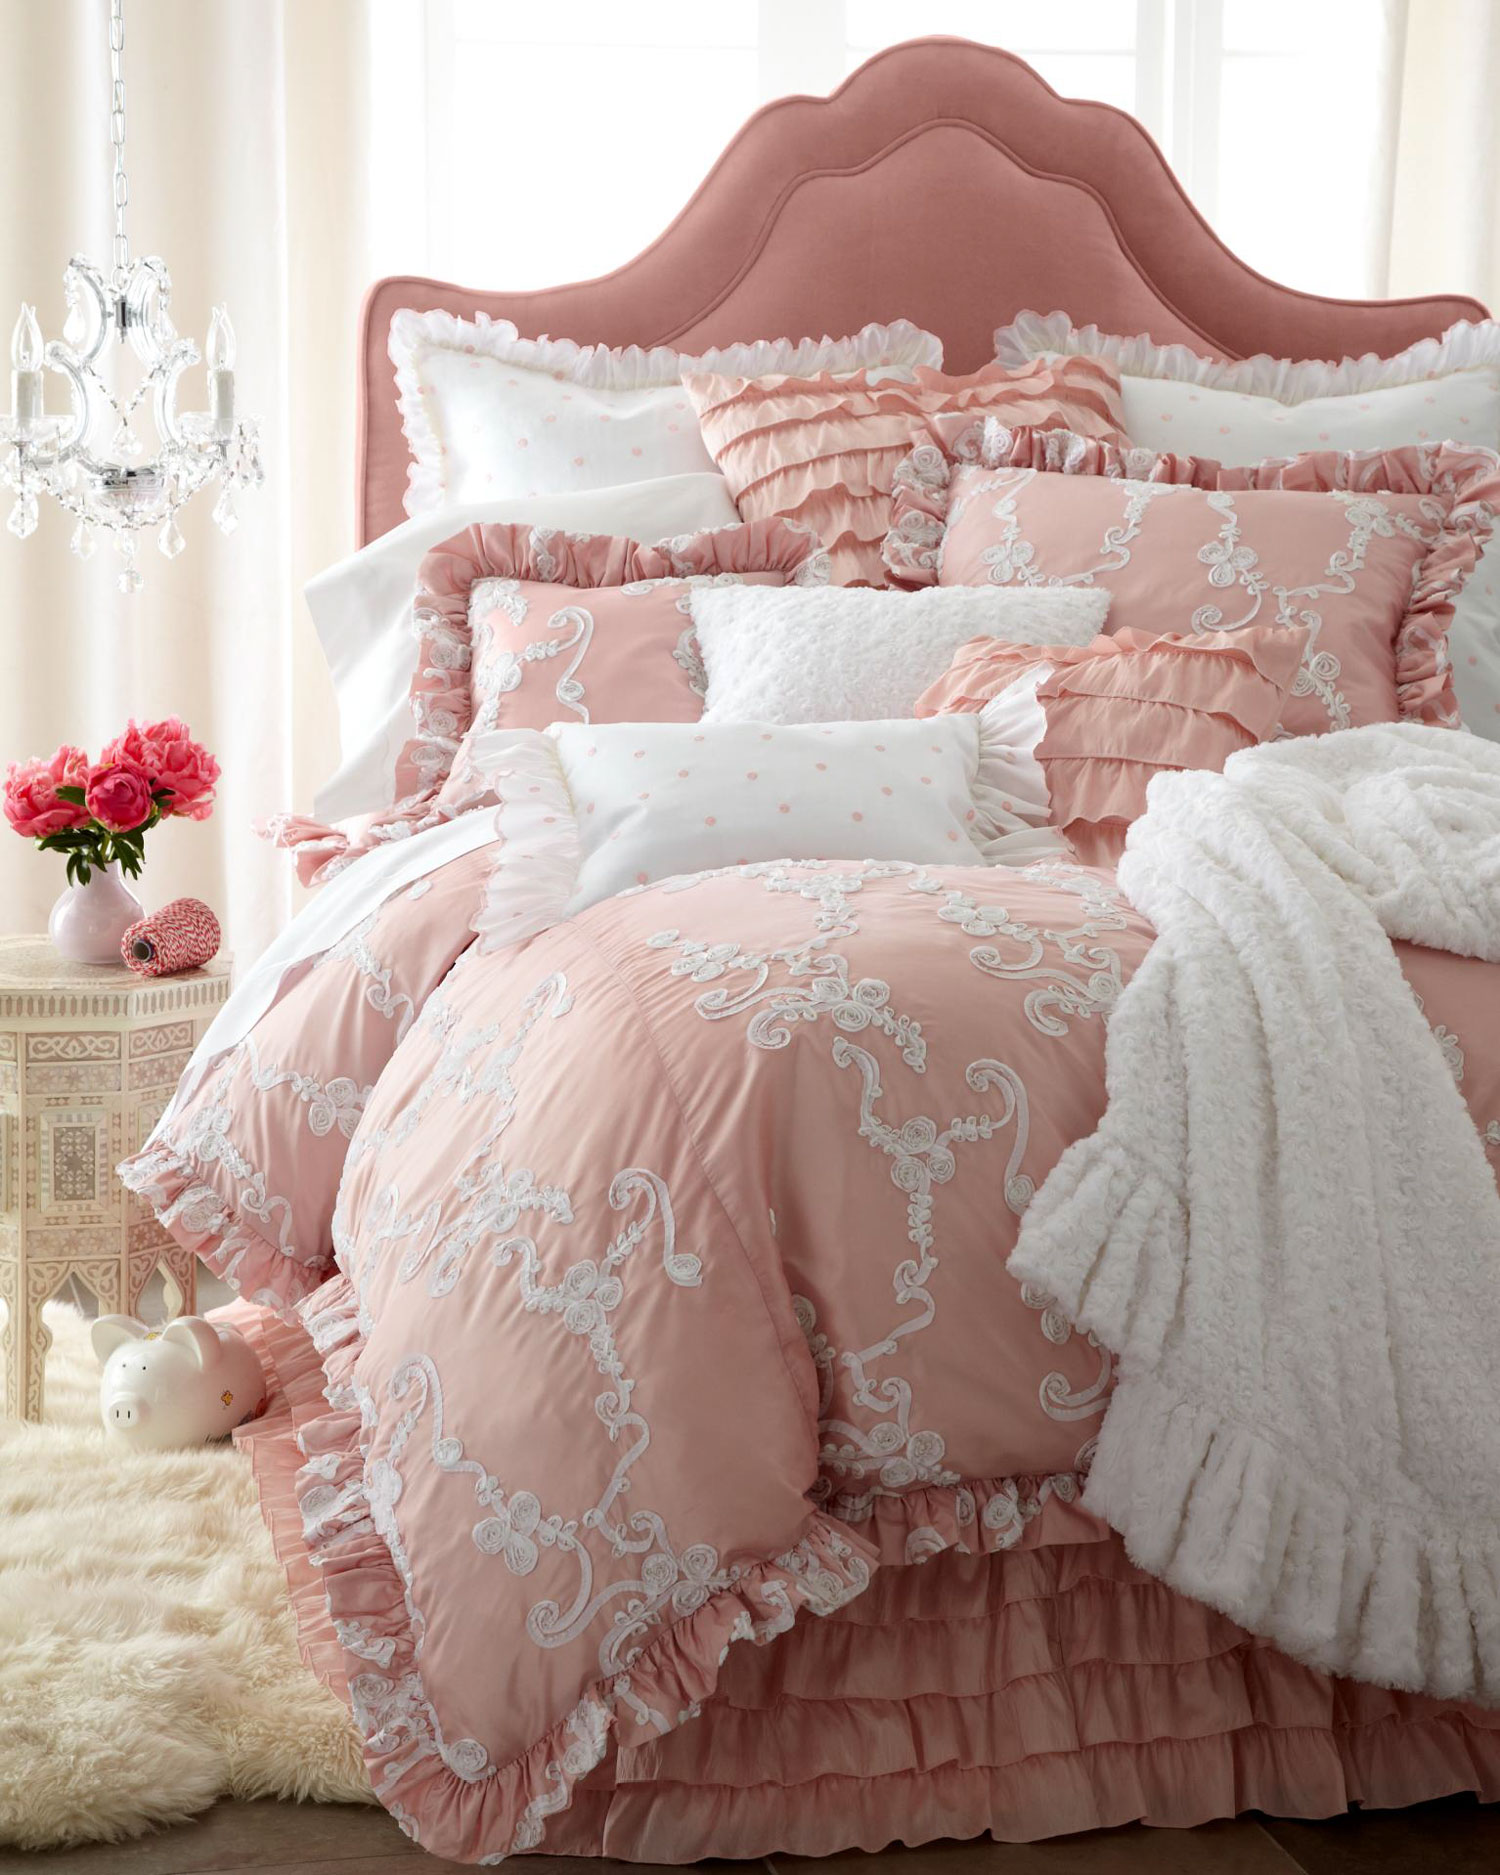 Catherine by Isabella Luxury Linens